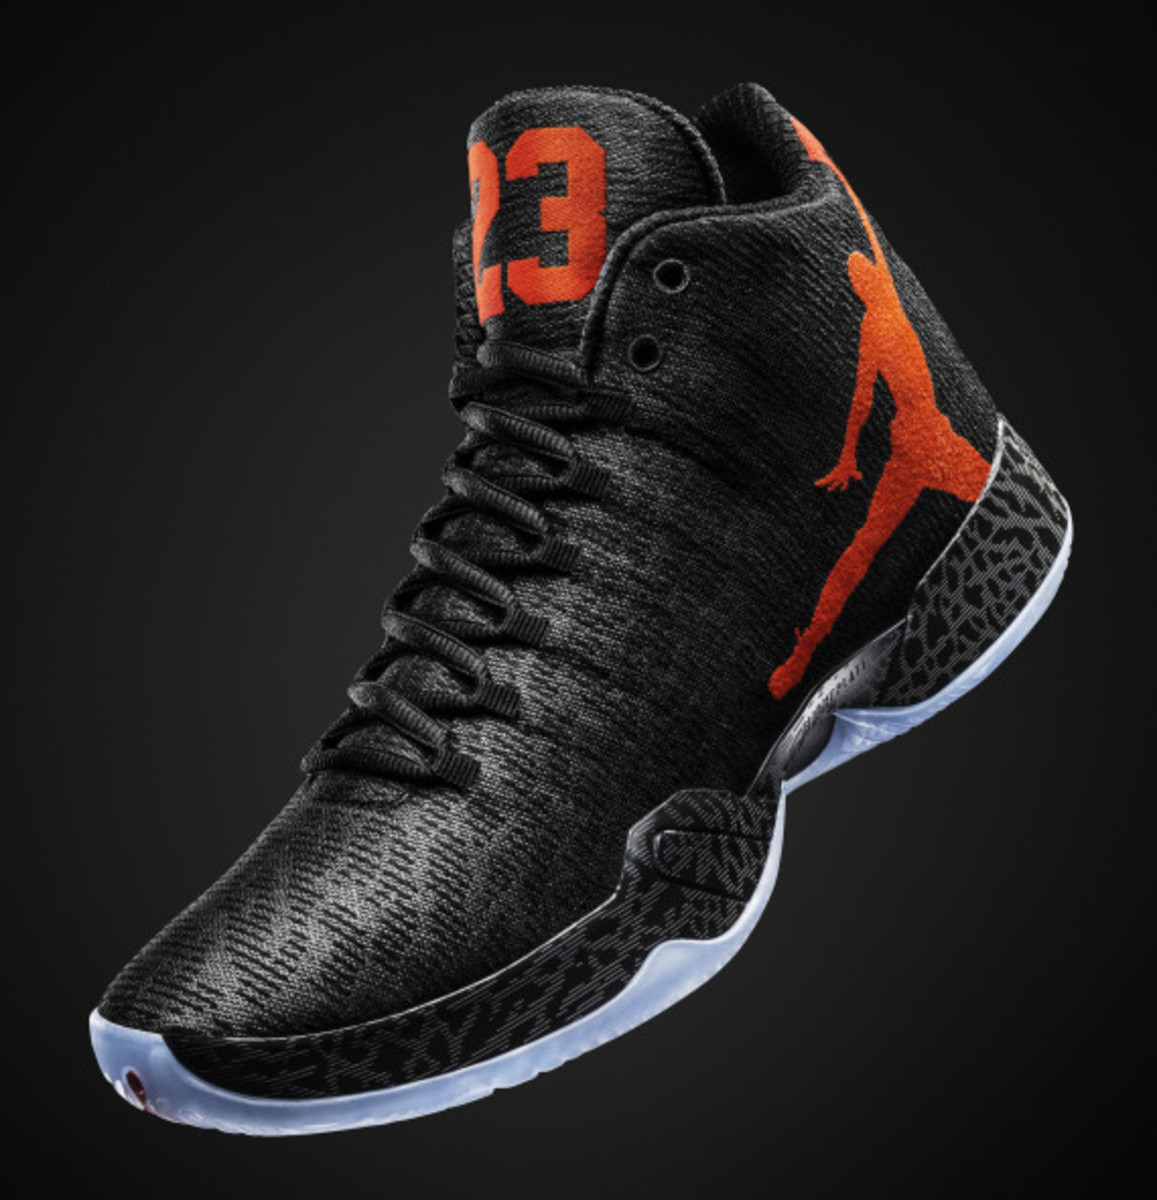 Air Jordan XX9 with First-Ever Performance Woven Upper | Officially Unveiled - 1